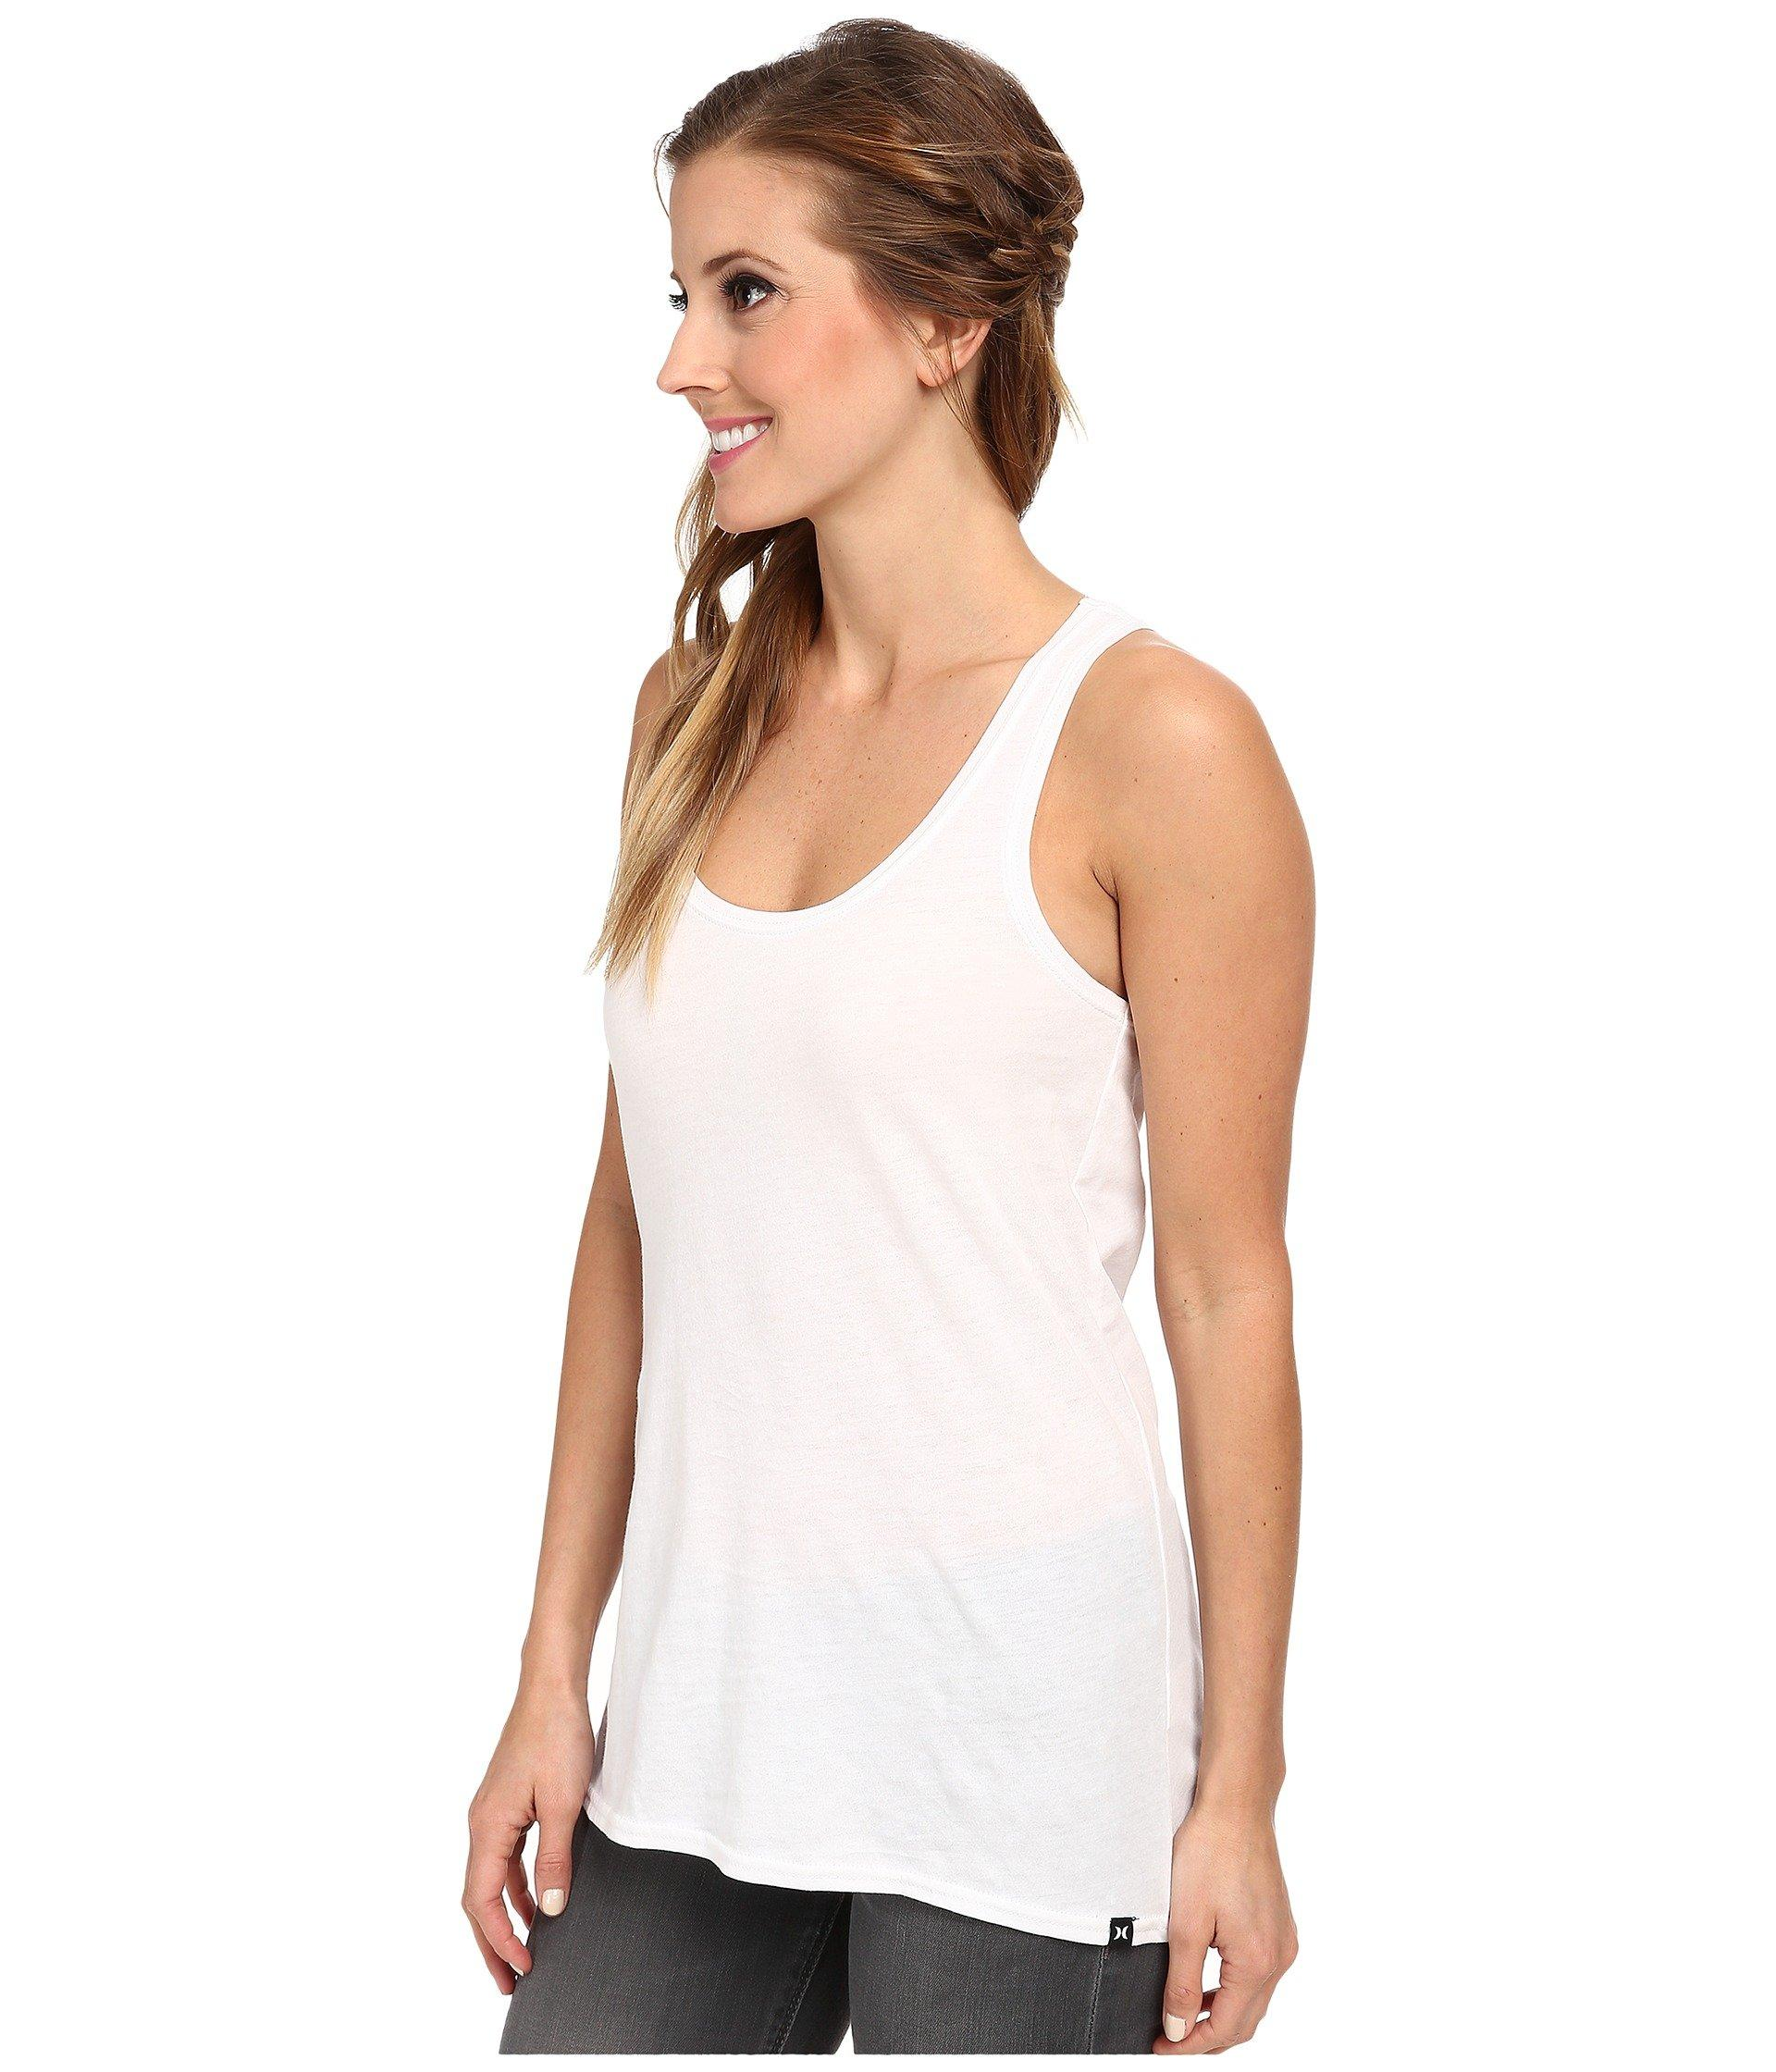 d0faa39f47a39 Lyst - Hurley Solid Perfect Tank Top (black) Women s Sleeveless in White